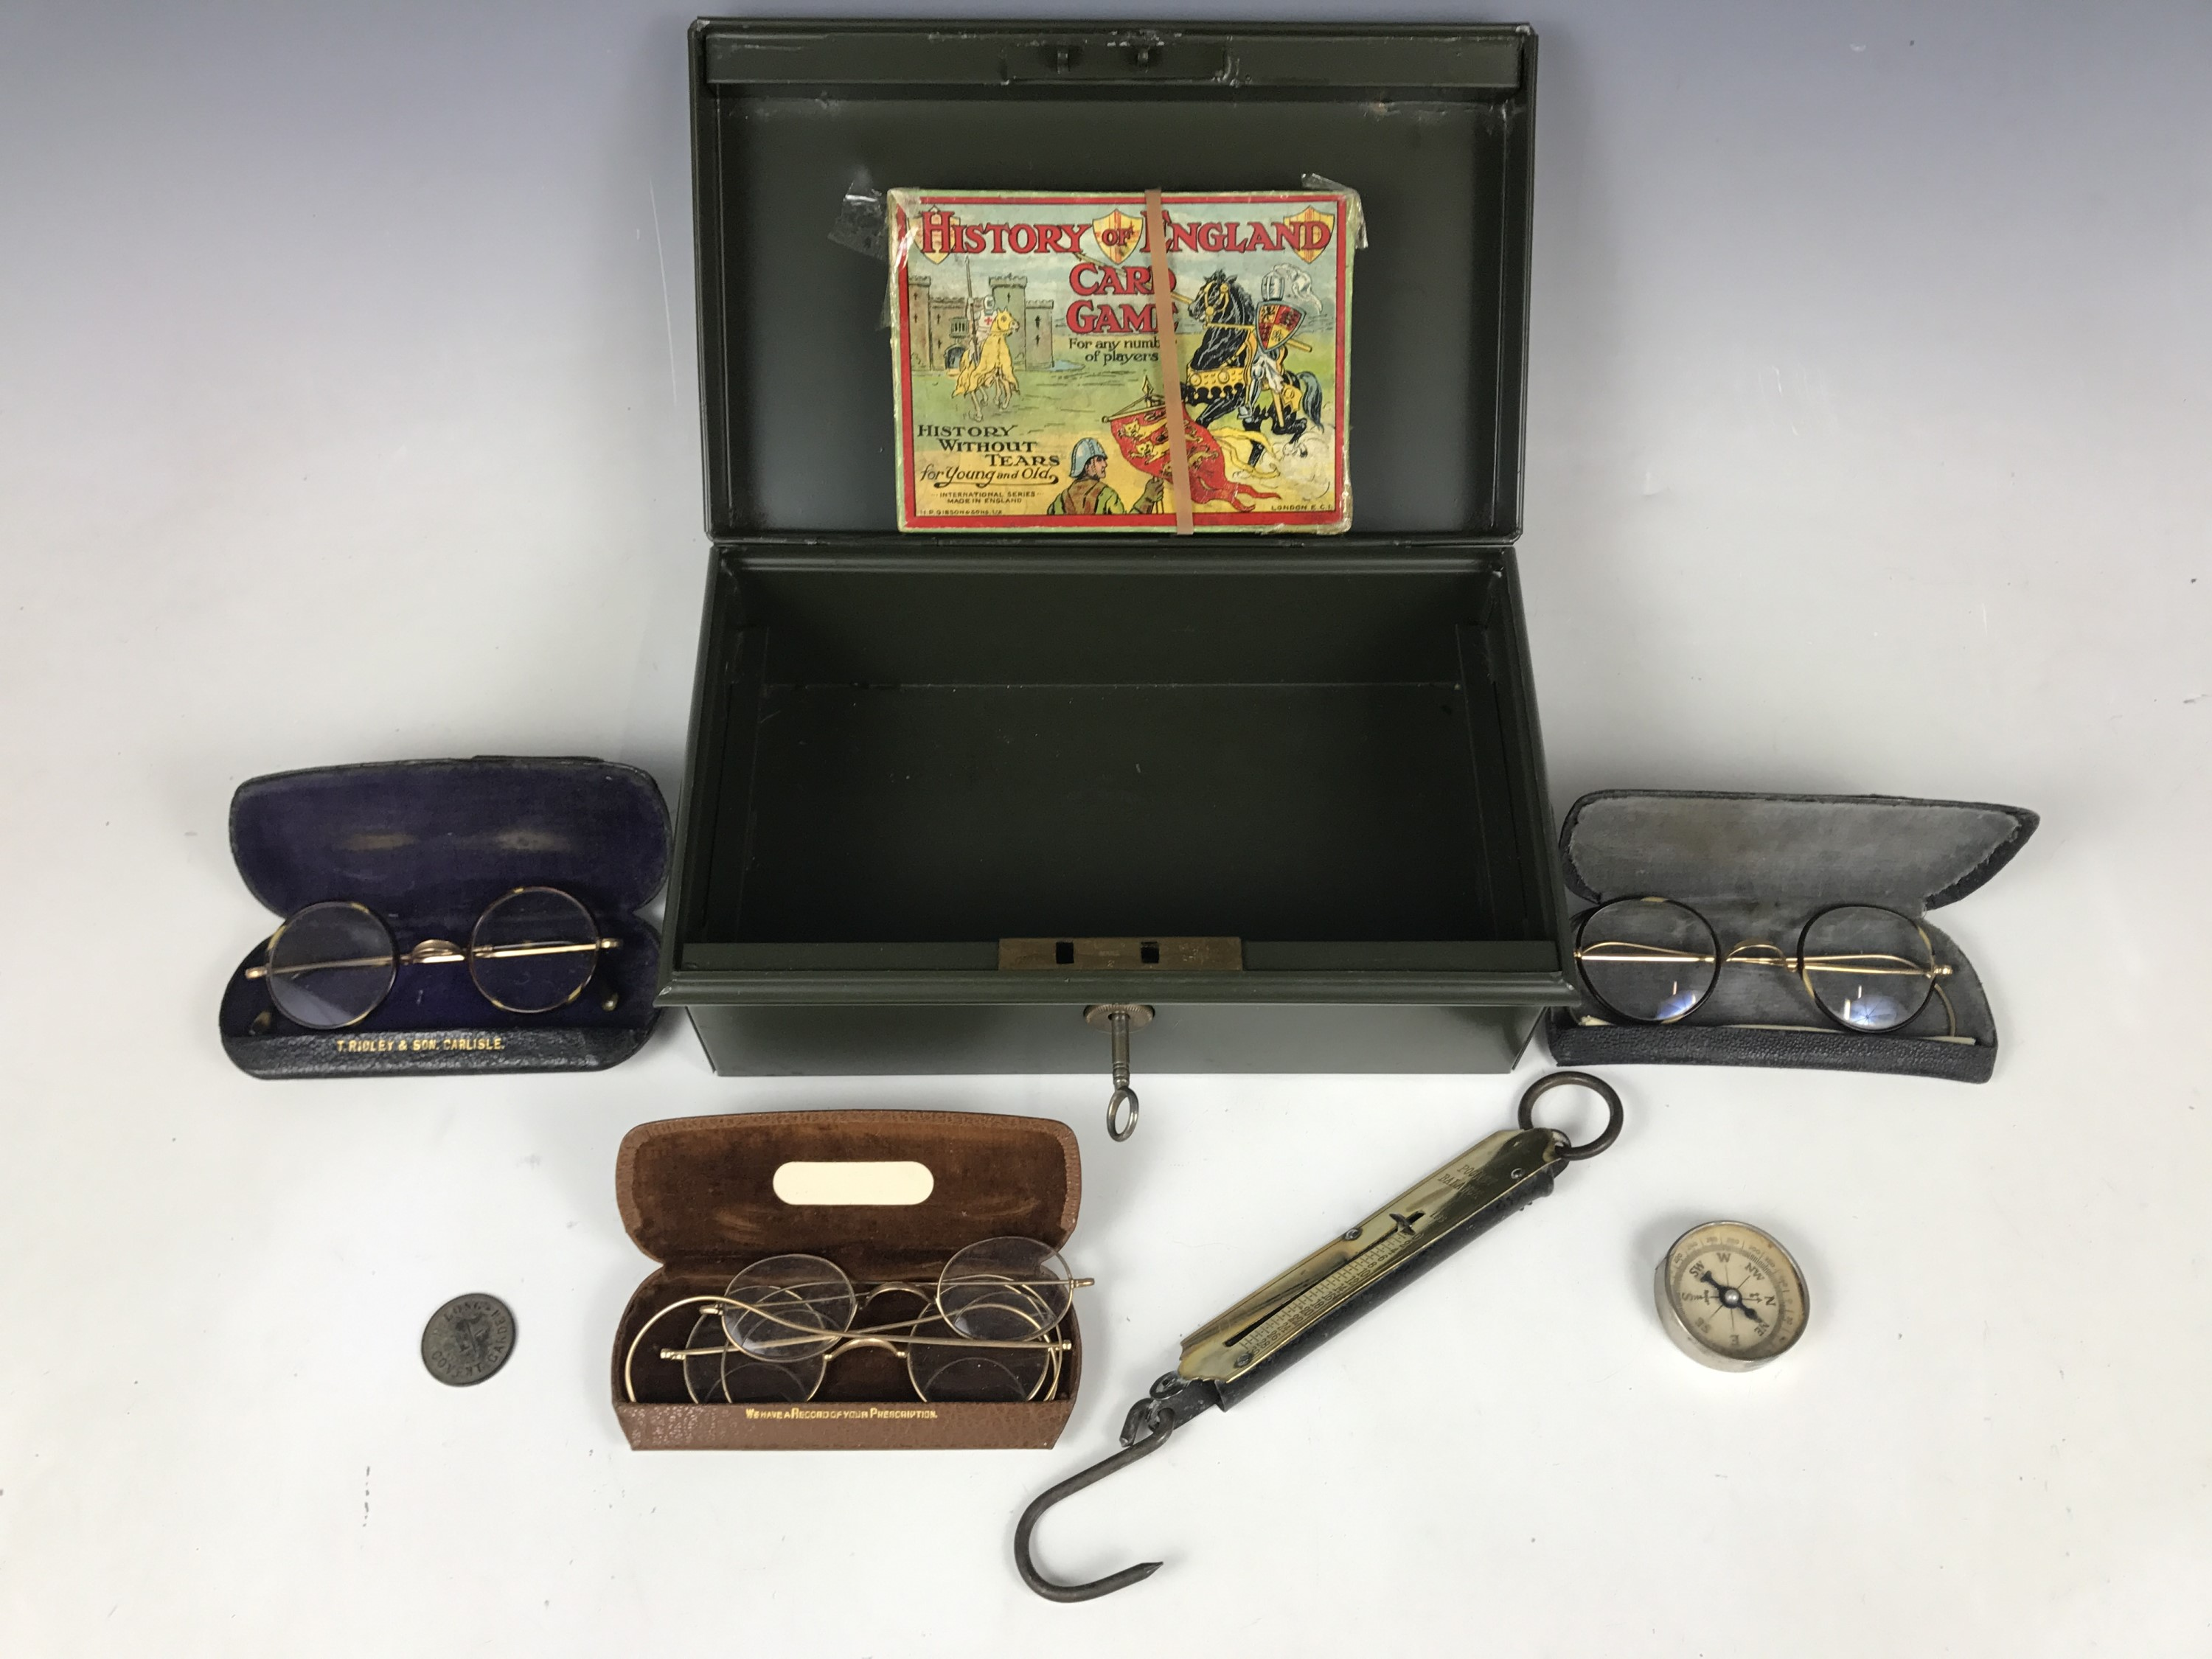 Lot 46 - A metal cash box together with pince-nez, spectacles, a pocket balance and a vintage game